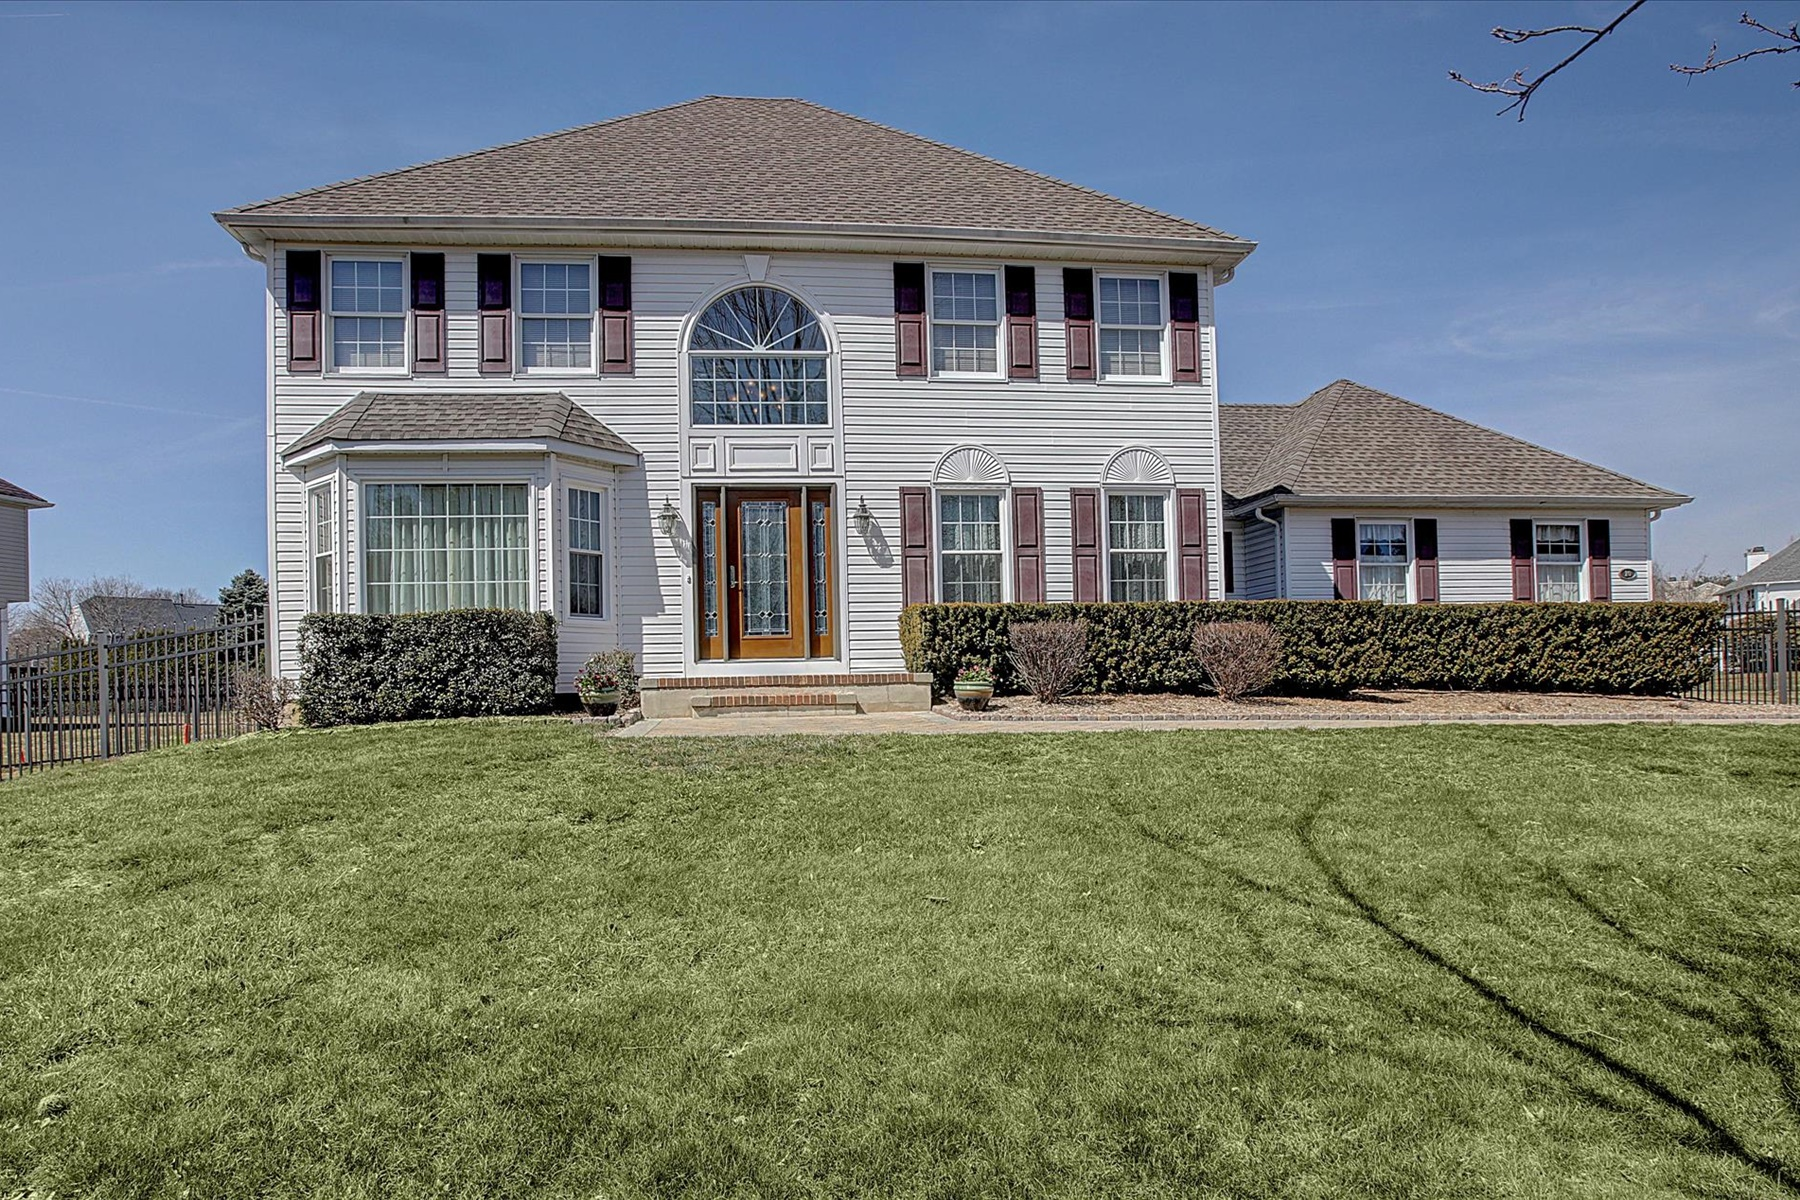 Single Family Home for Sale at Squires Gate 10 Iroquois Drive, Freehold, New Jersey 07728 United States